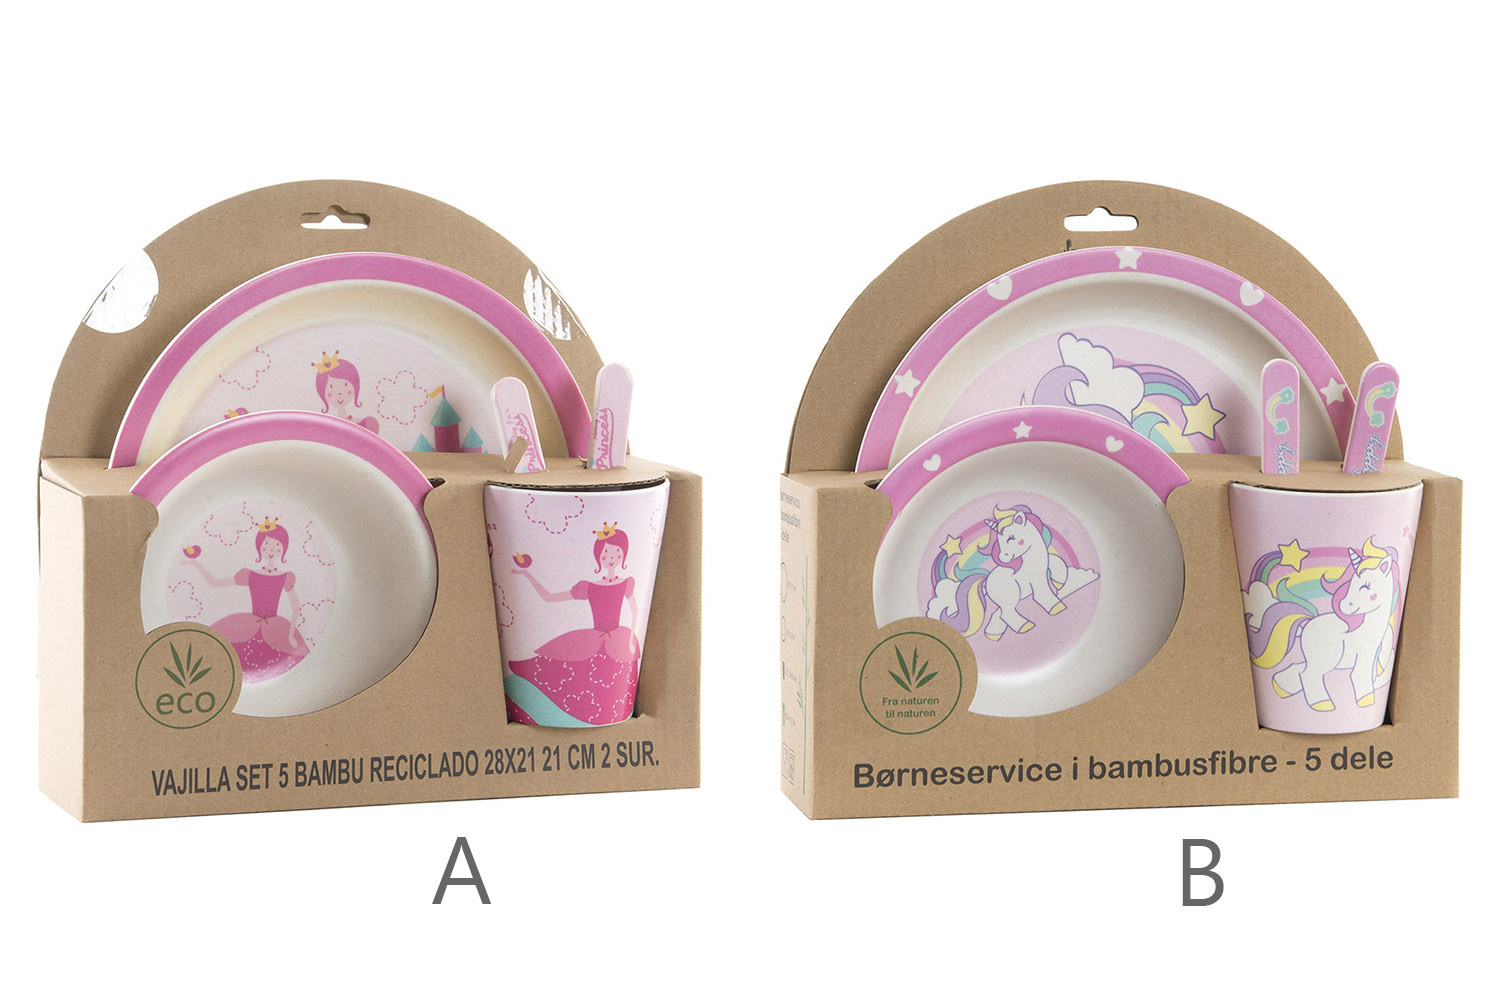 Cutlery Set of 5 Products, Bamboo, Recycled, Re-usable, Design, Pink Fantasy, Product Child 25x9,5x24cm - Home and More